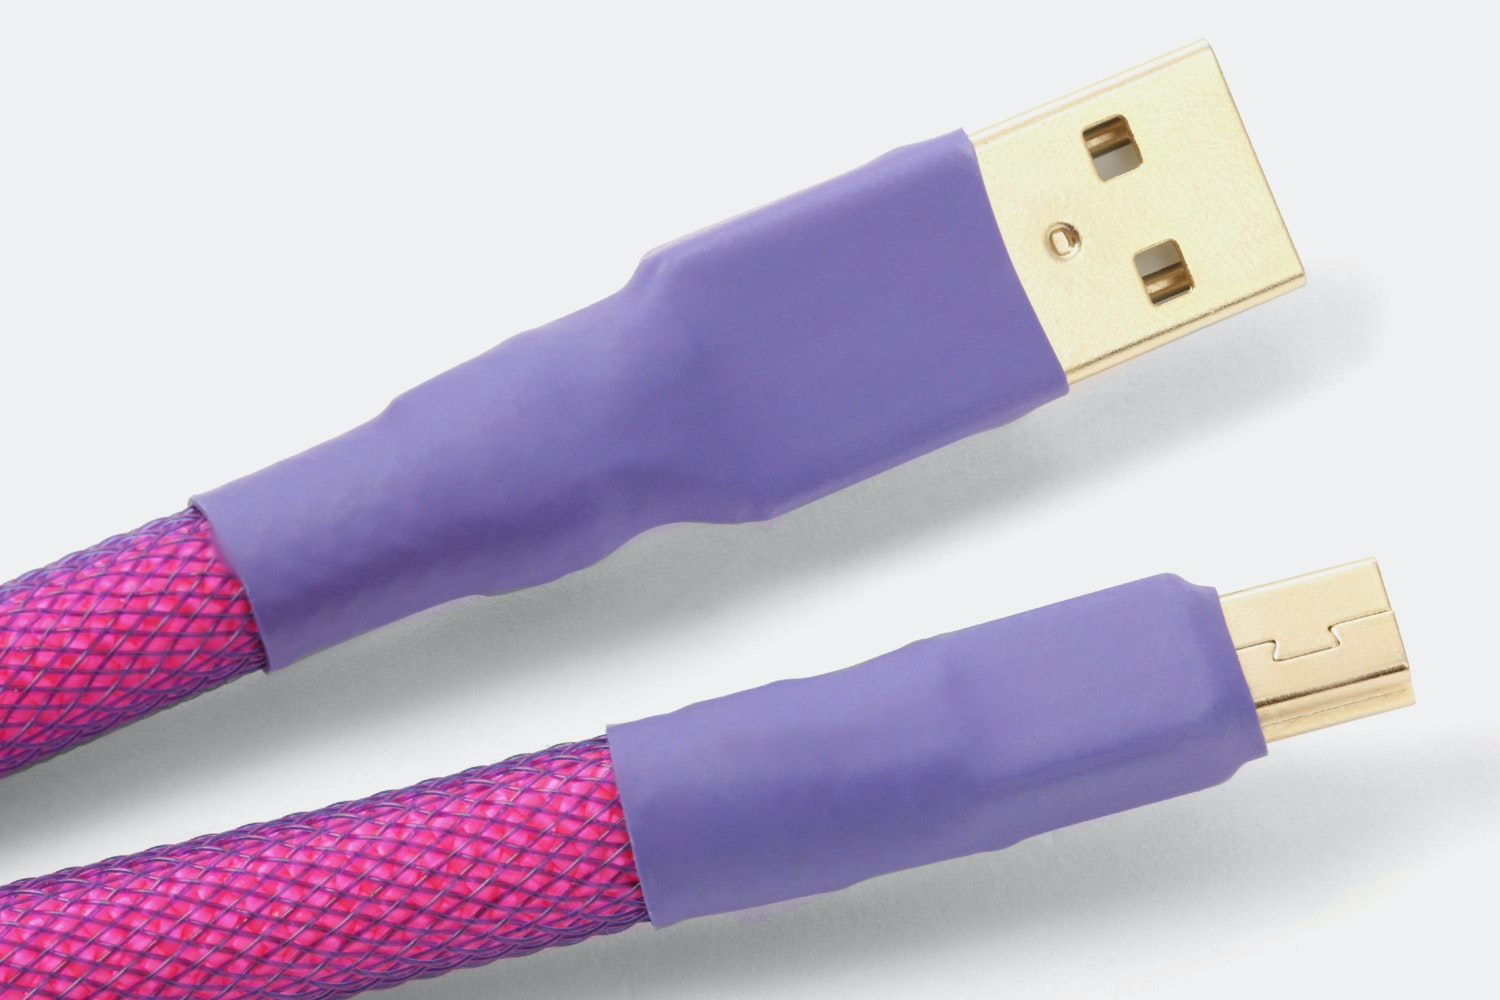 Mechcables Laser Custom-Sleeved USB Cable